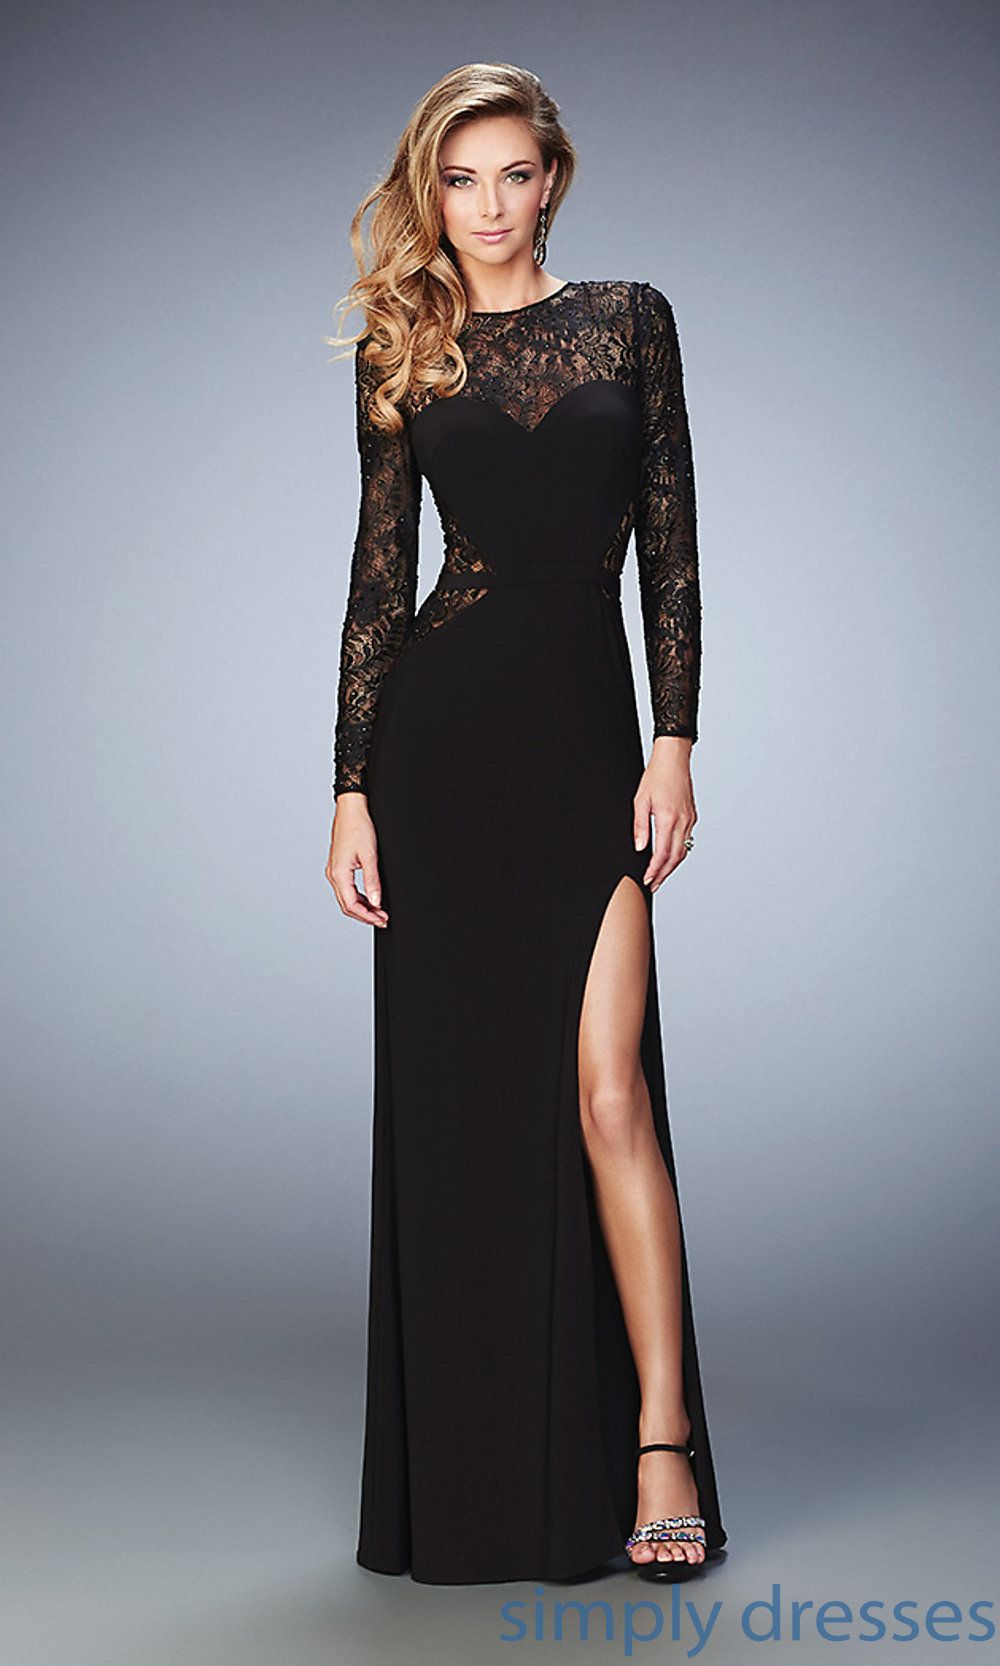 Homecoming dresses formal prom dresses evening wear black long